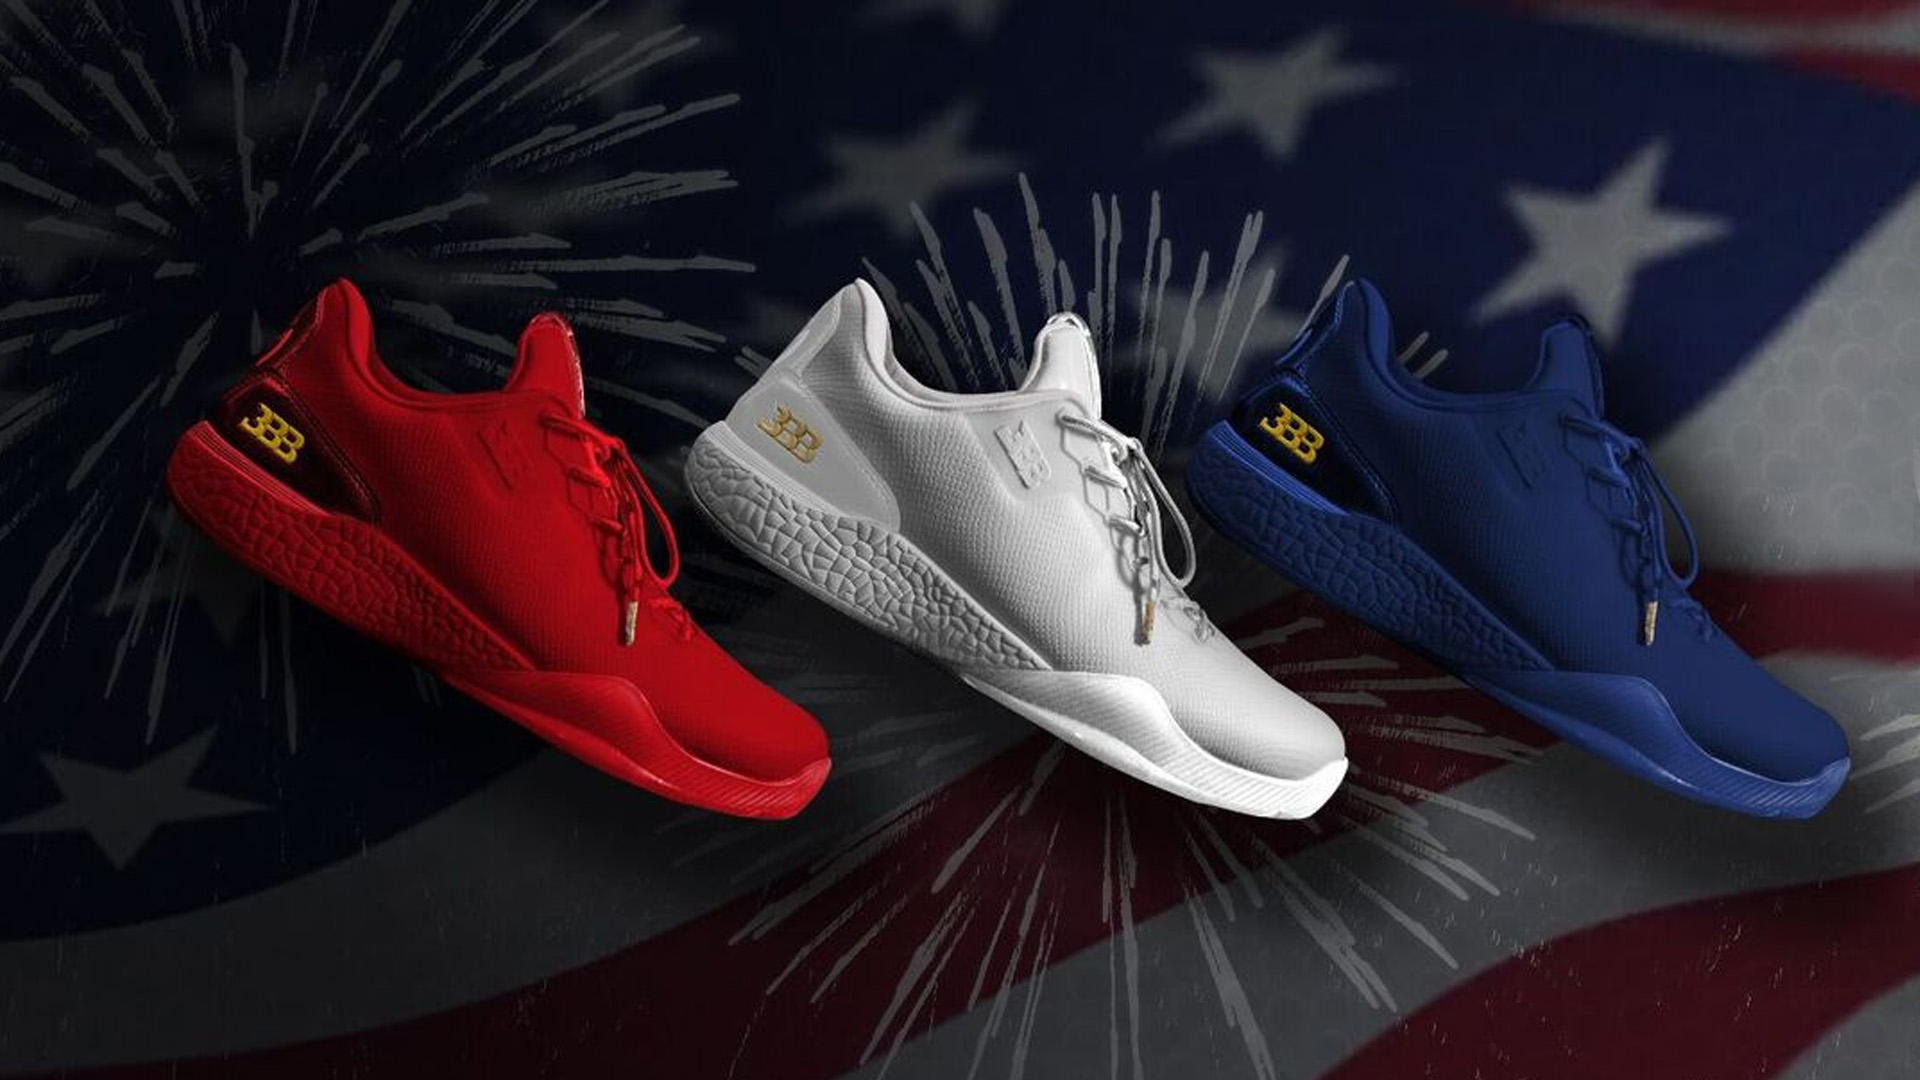 Big Baller Brand Unveils the Independence Day Collection of the ZO2